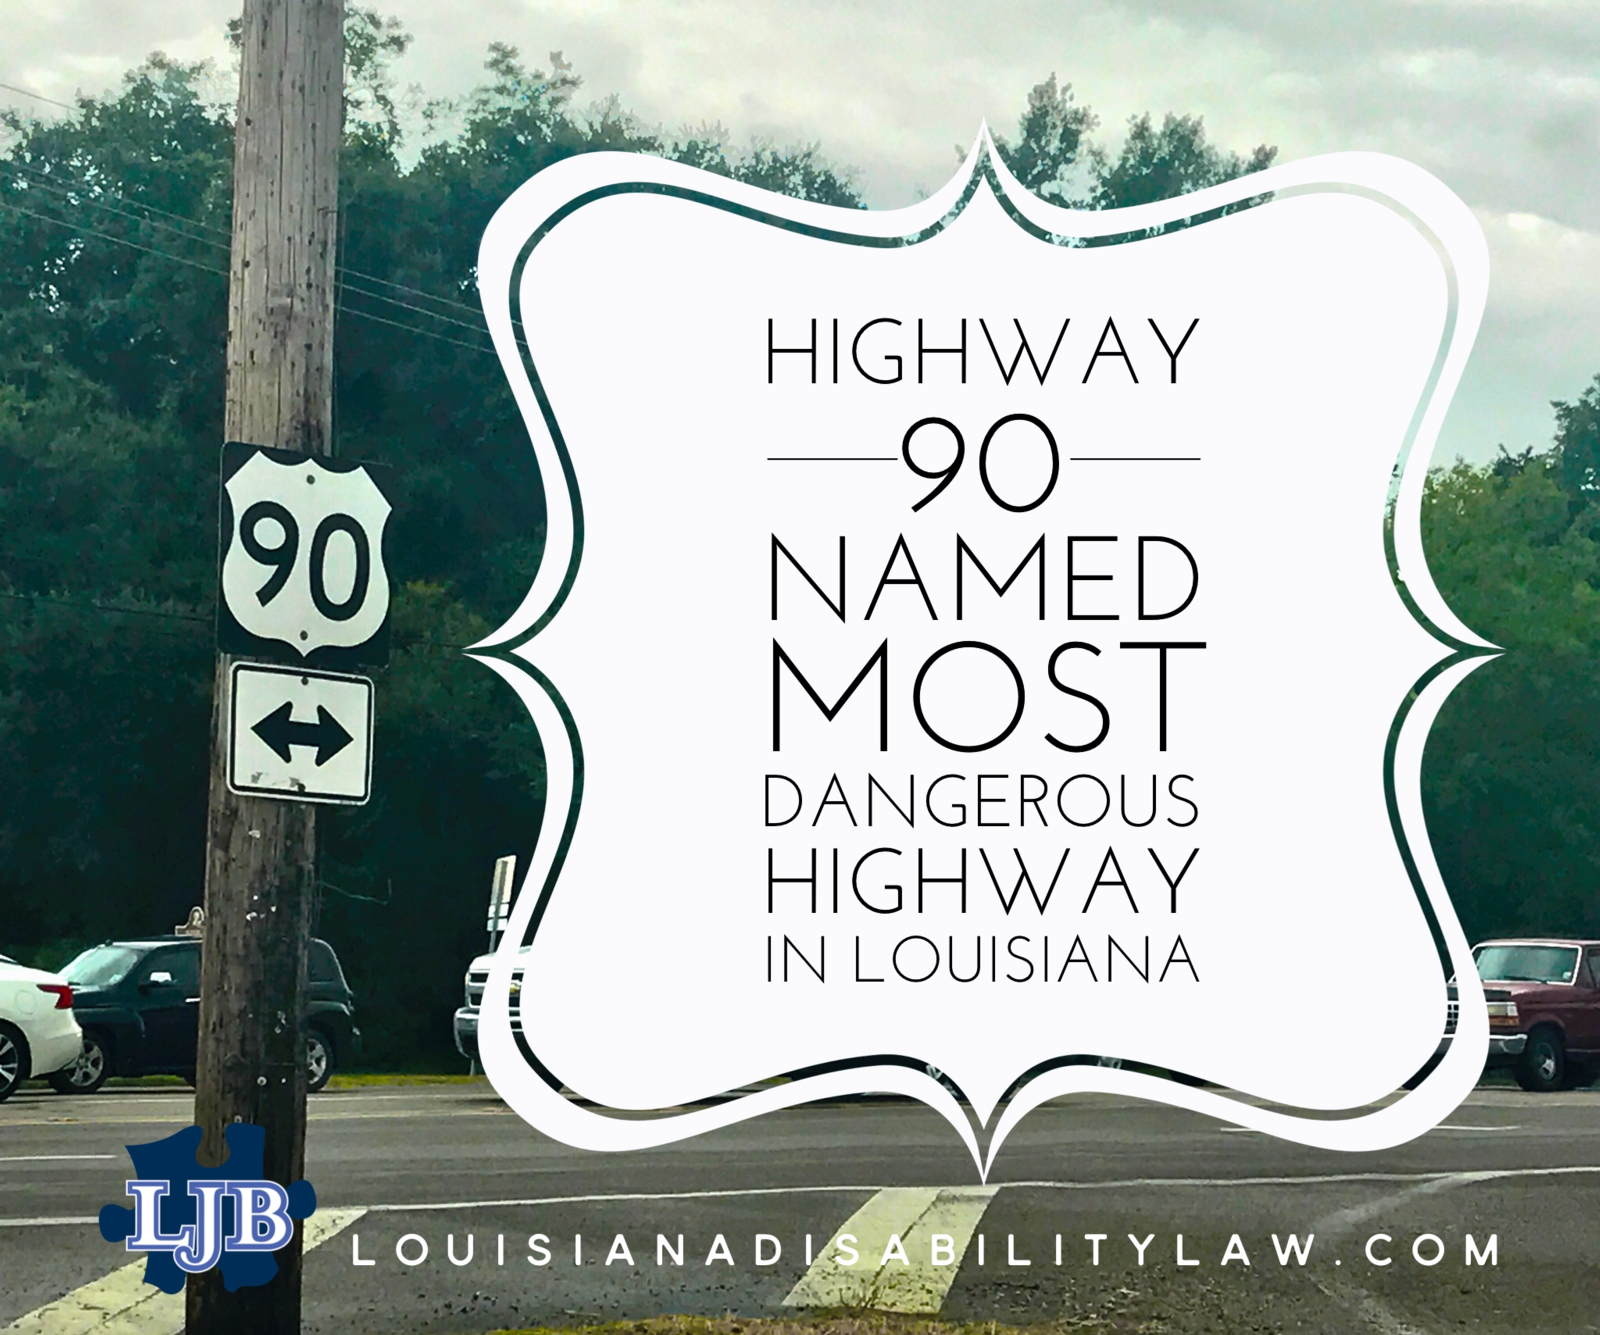 Hwy 90 named most dangerous highway in Louisiana